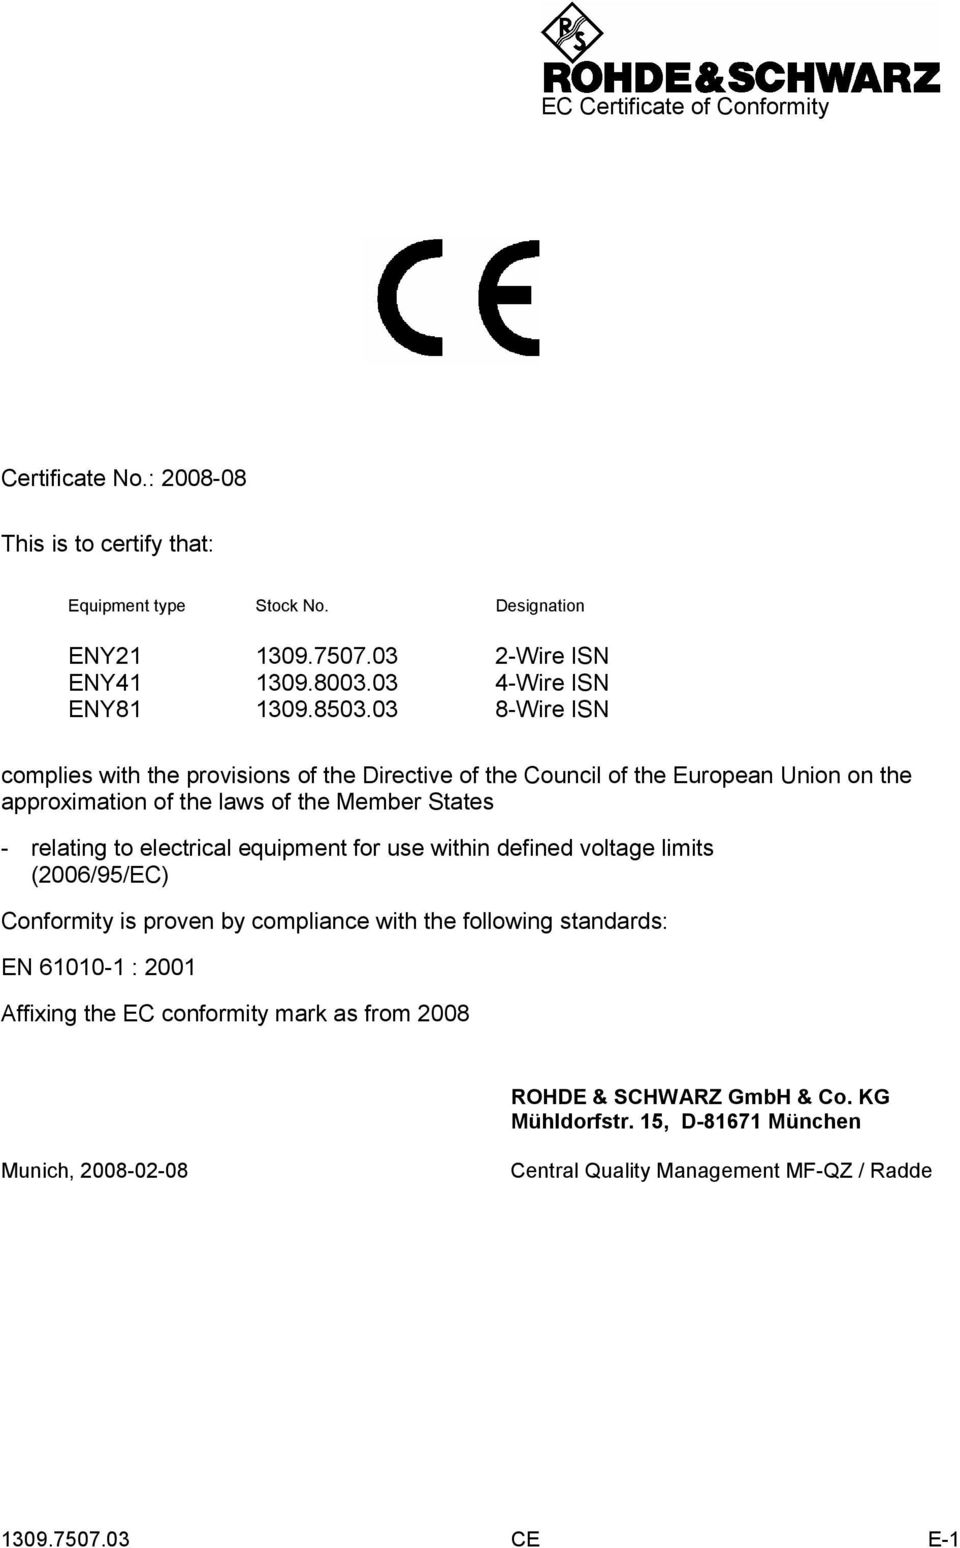 03 8-Wire ISN complies with the provisions of the Directive of the Council of the European Union on the approximation of the laws of the Member States - relating to